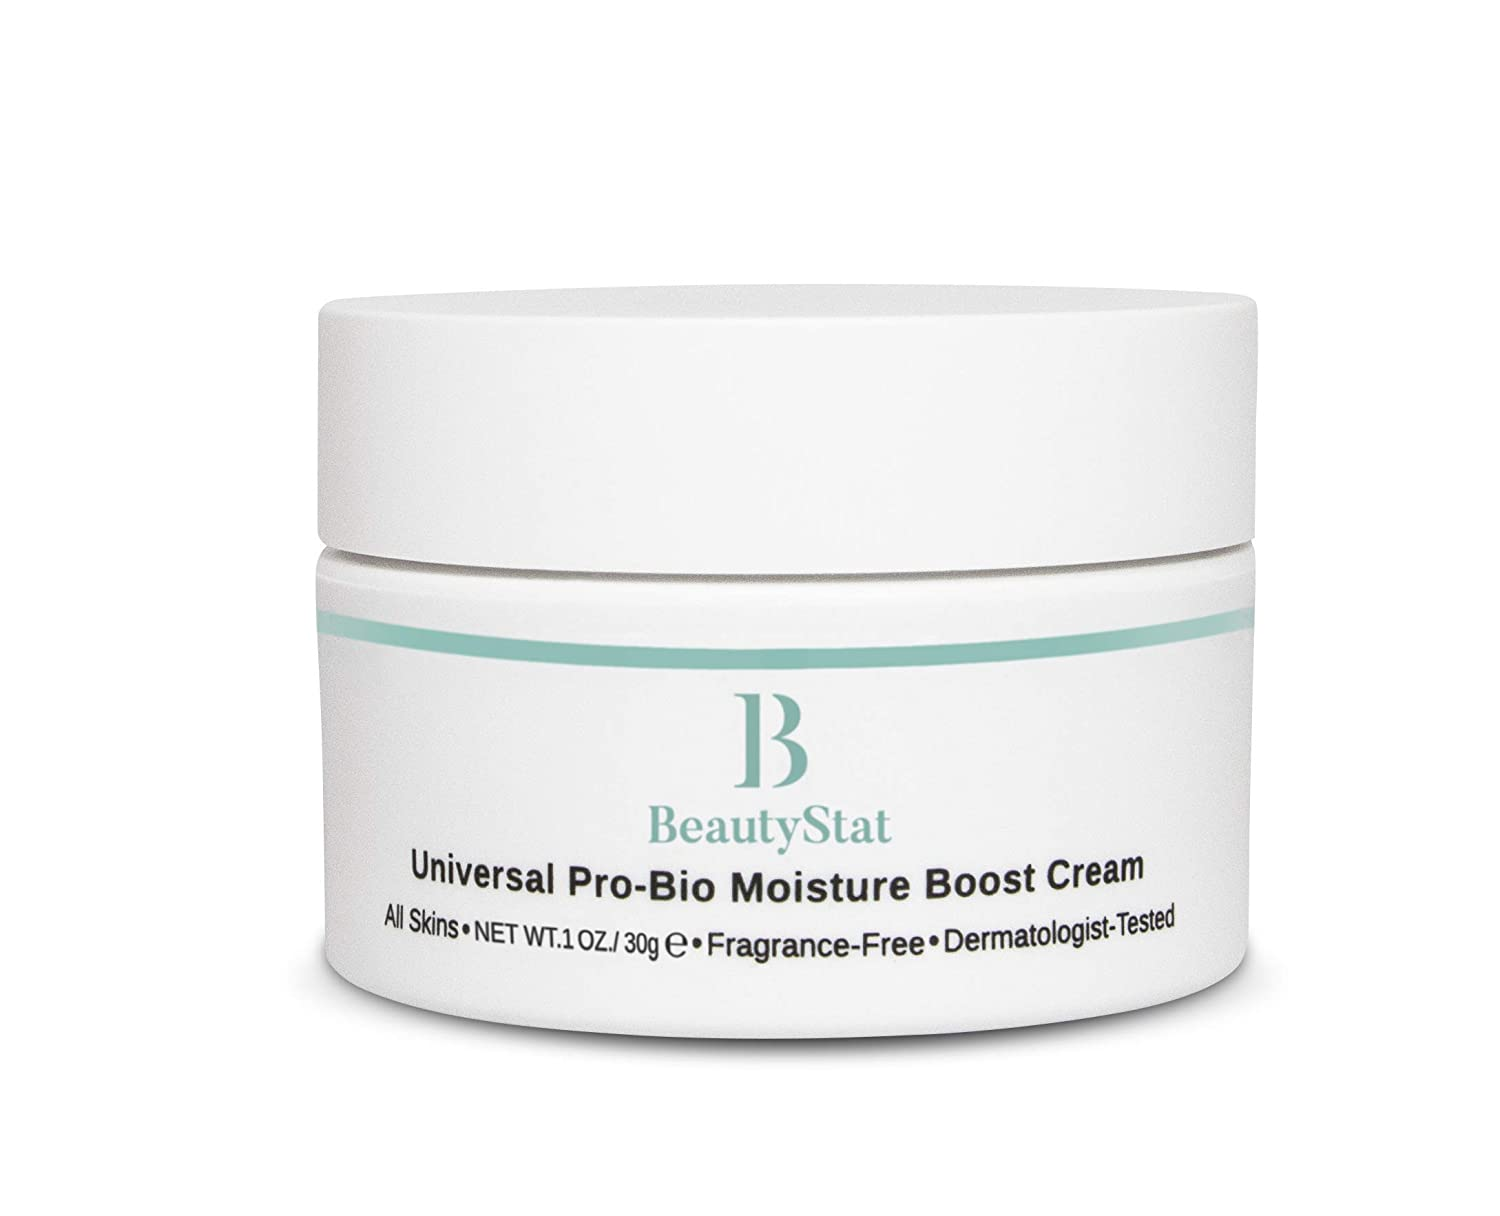 BeautyStat Cosmetics Universal Pro-Bio Moisture Boost Cream, Hyaluronic Acid Facial Skin Moisturizer, Natural Anti Aging, Anti Wrinkle, 1 oz.